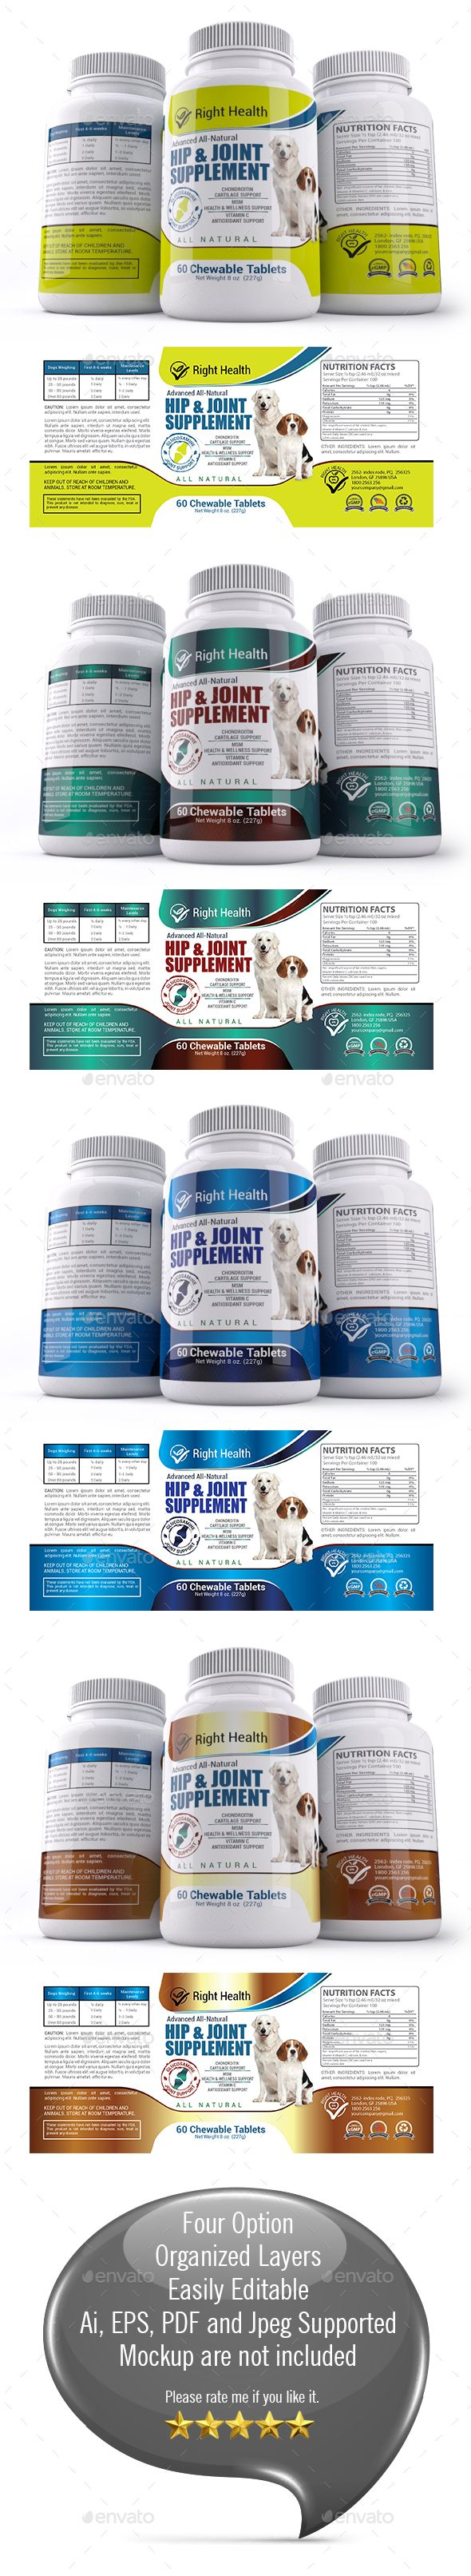 Dog Hip & Joint Supplement Label Templates